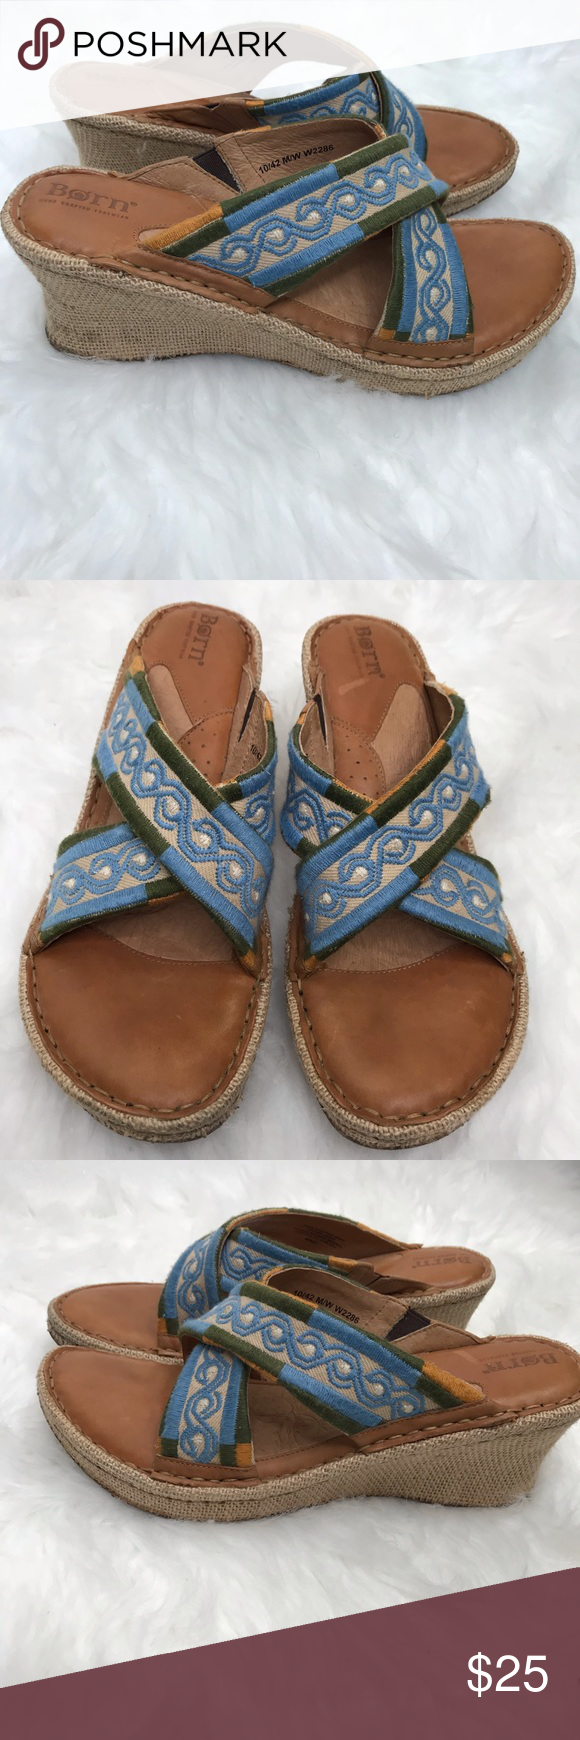 764cf9f4c952 Born Wedge Slip Ons Size 10 Good Used Condition Gently Used Born Shoes  Wedges